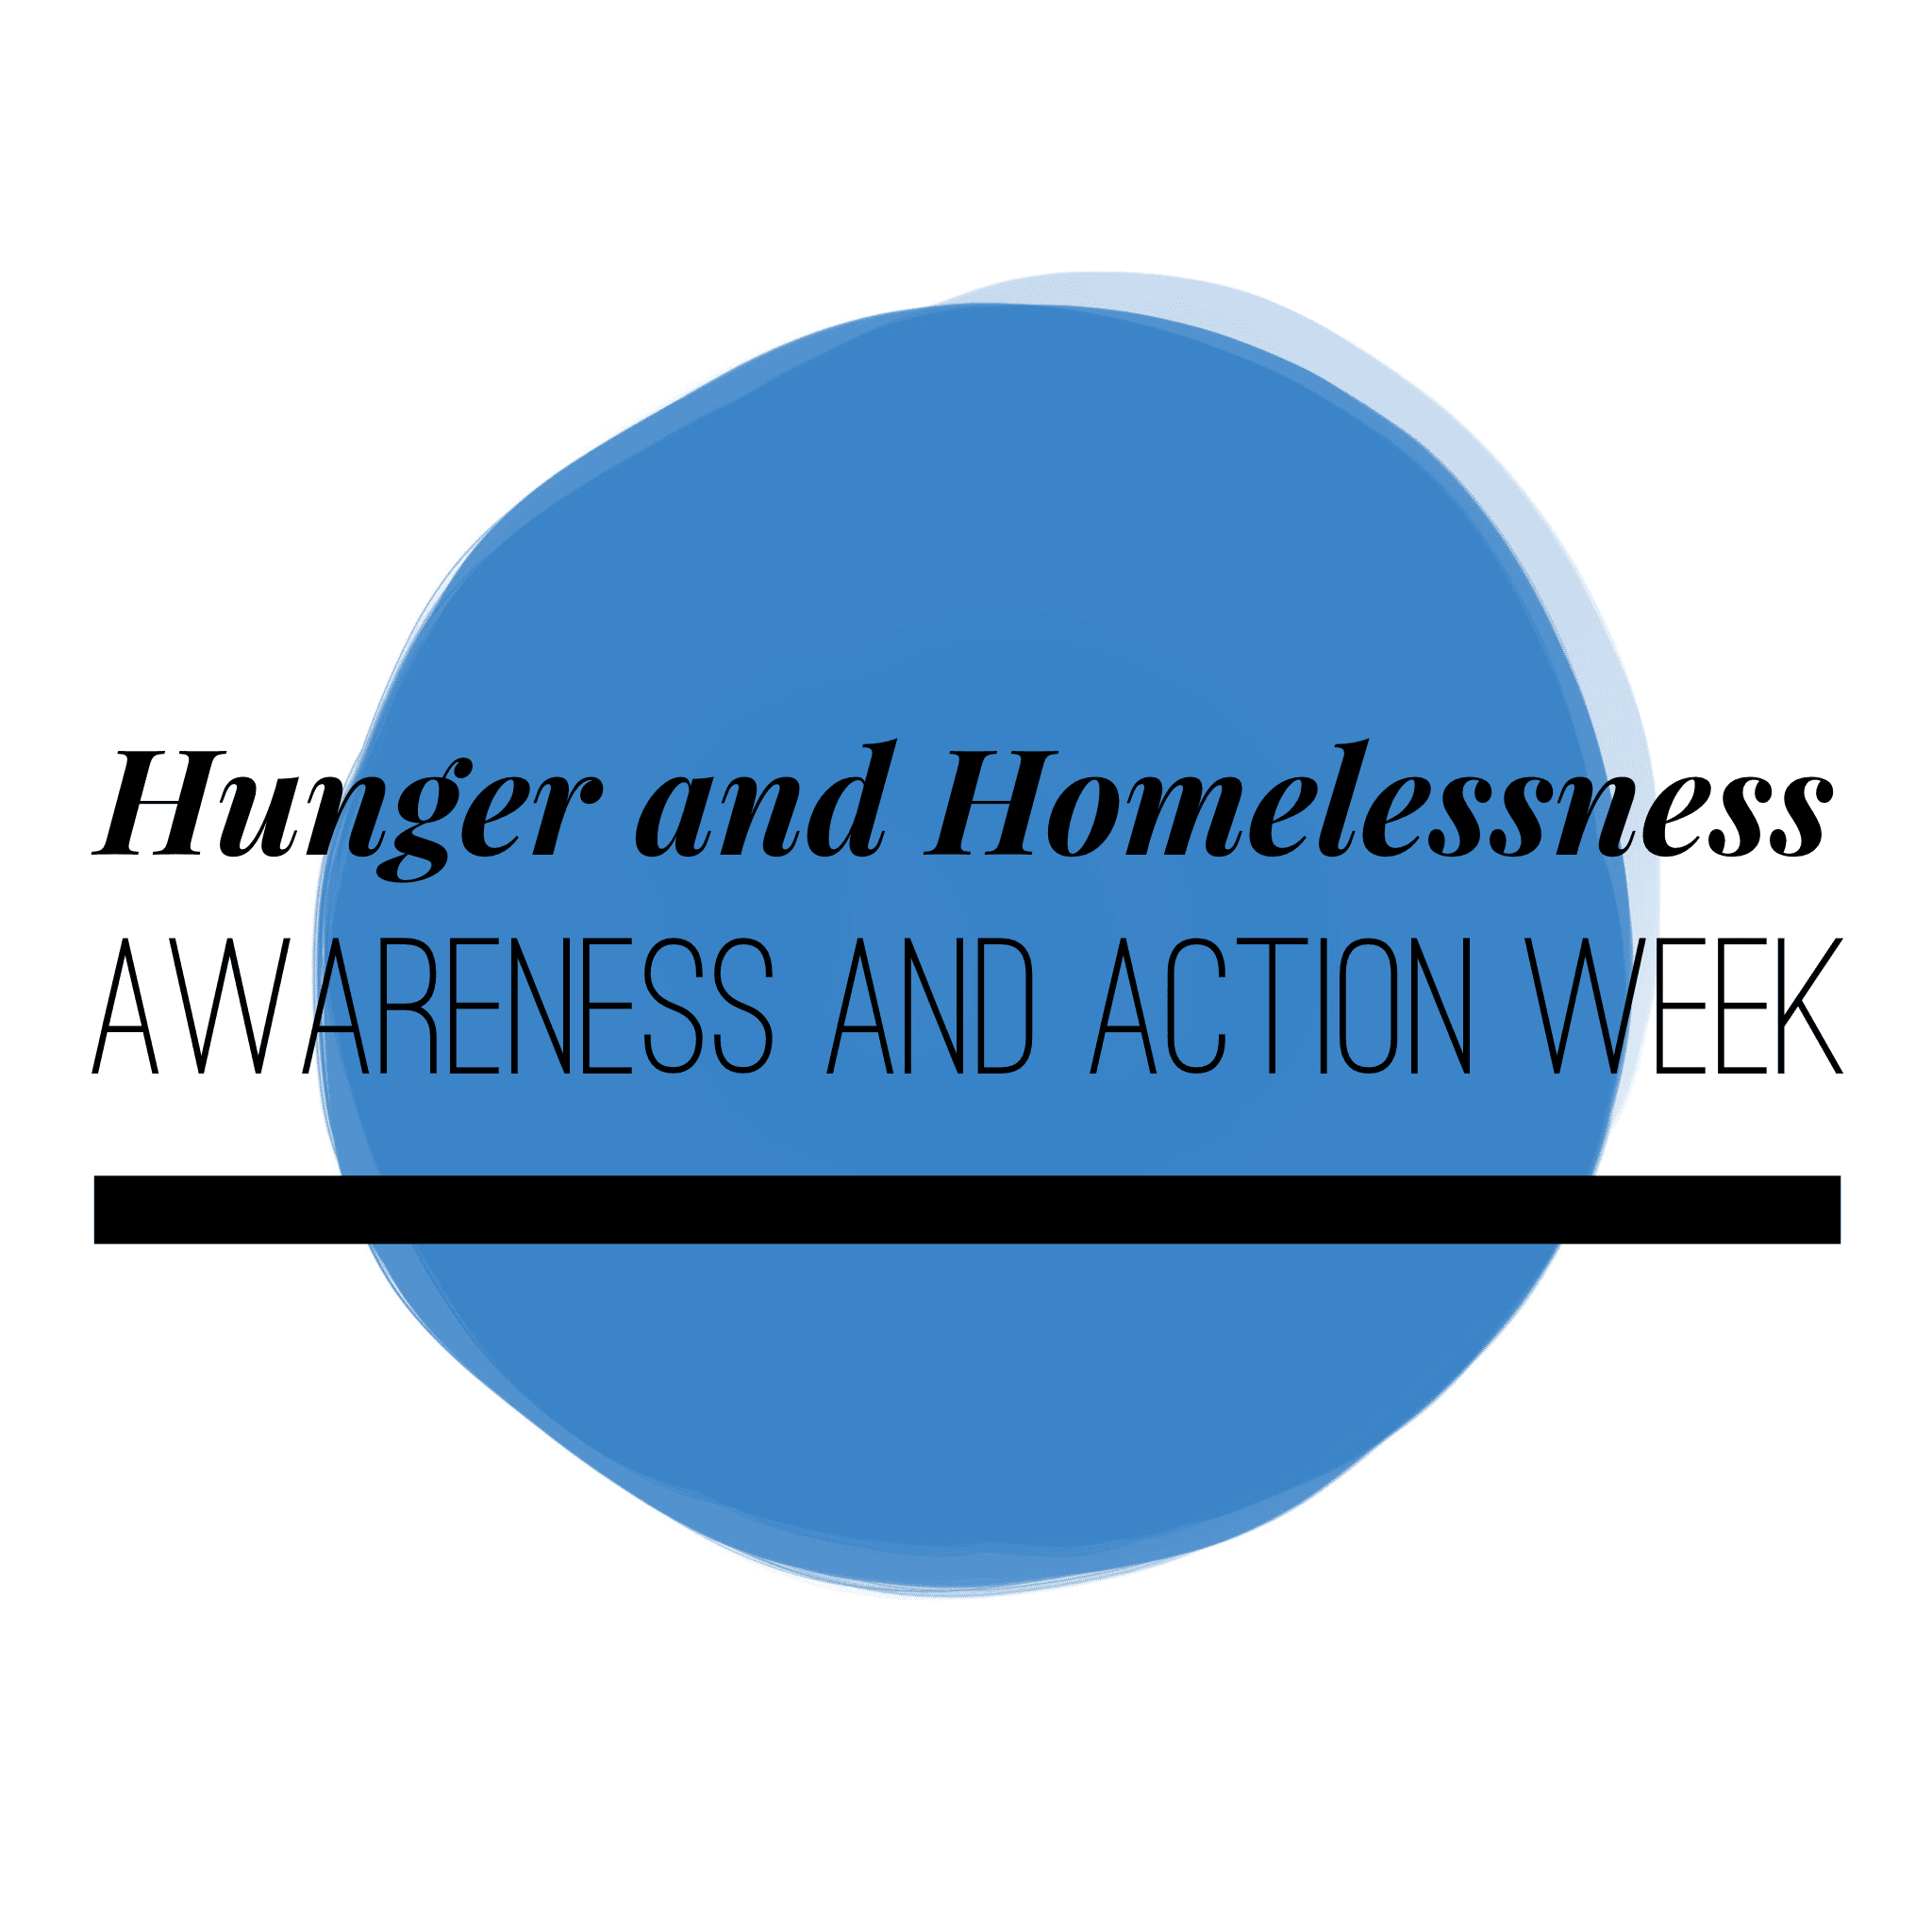 Hunger and Homelessness Awareness and Action Week